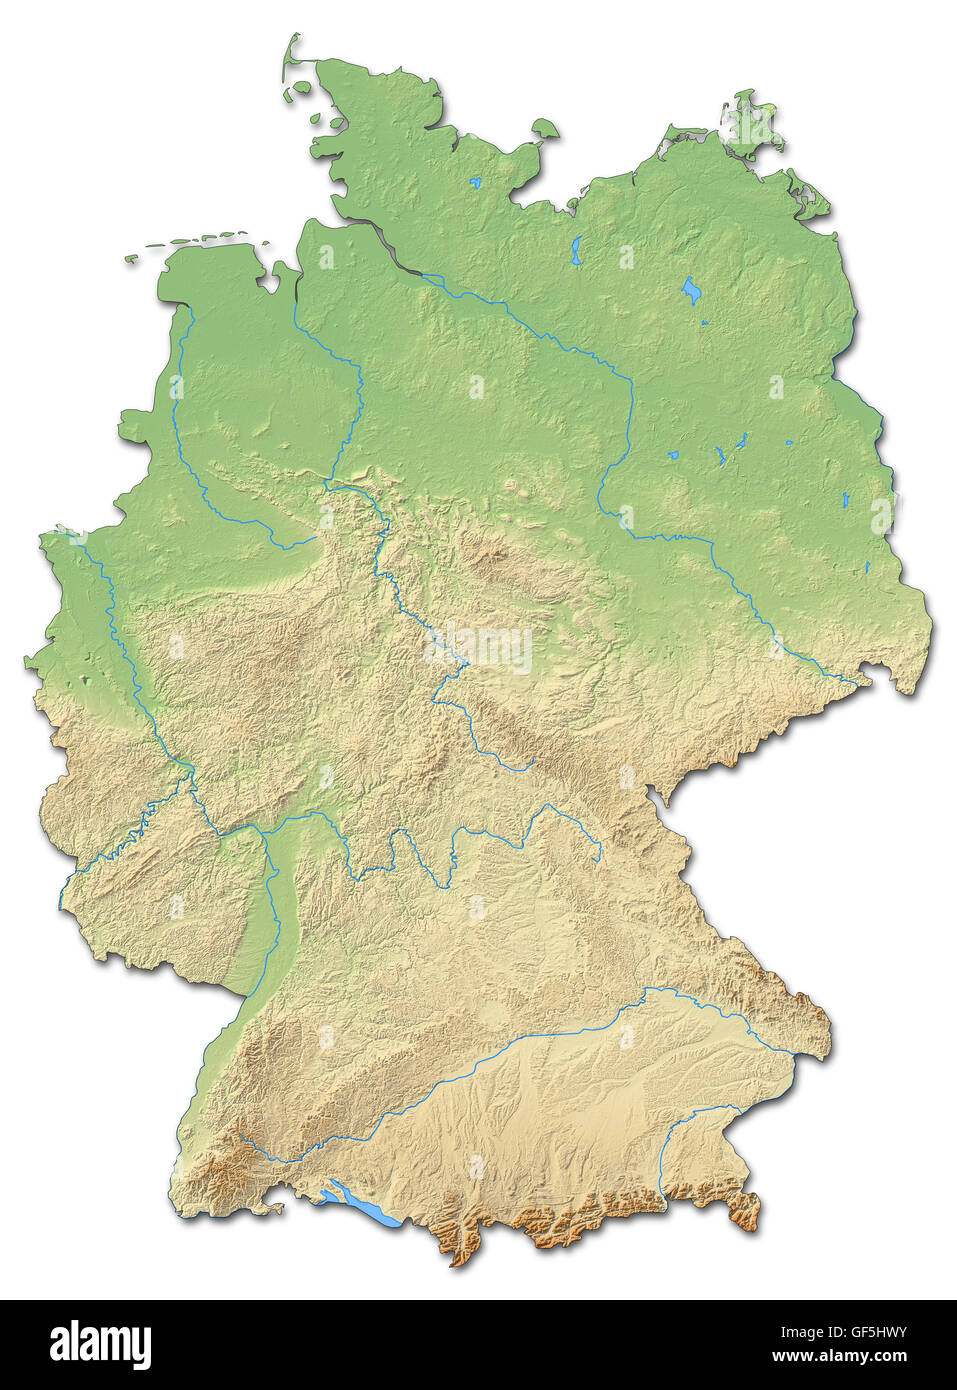 Map Of The World Germany.Germany Map Stock Photos Germany Map Stock Images Alamy